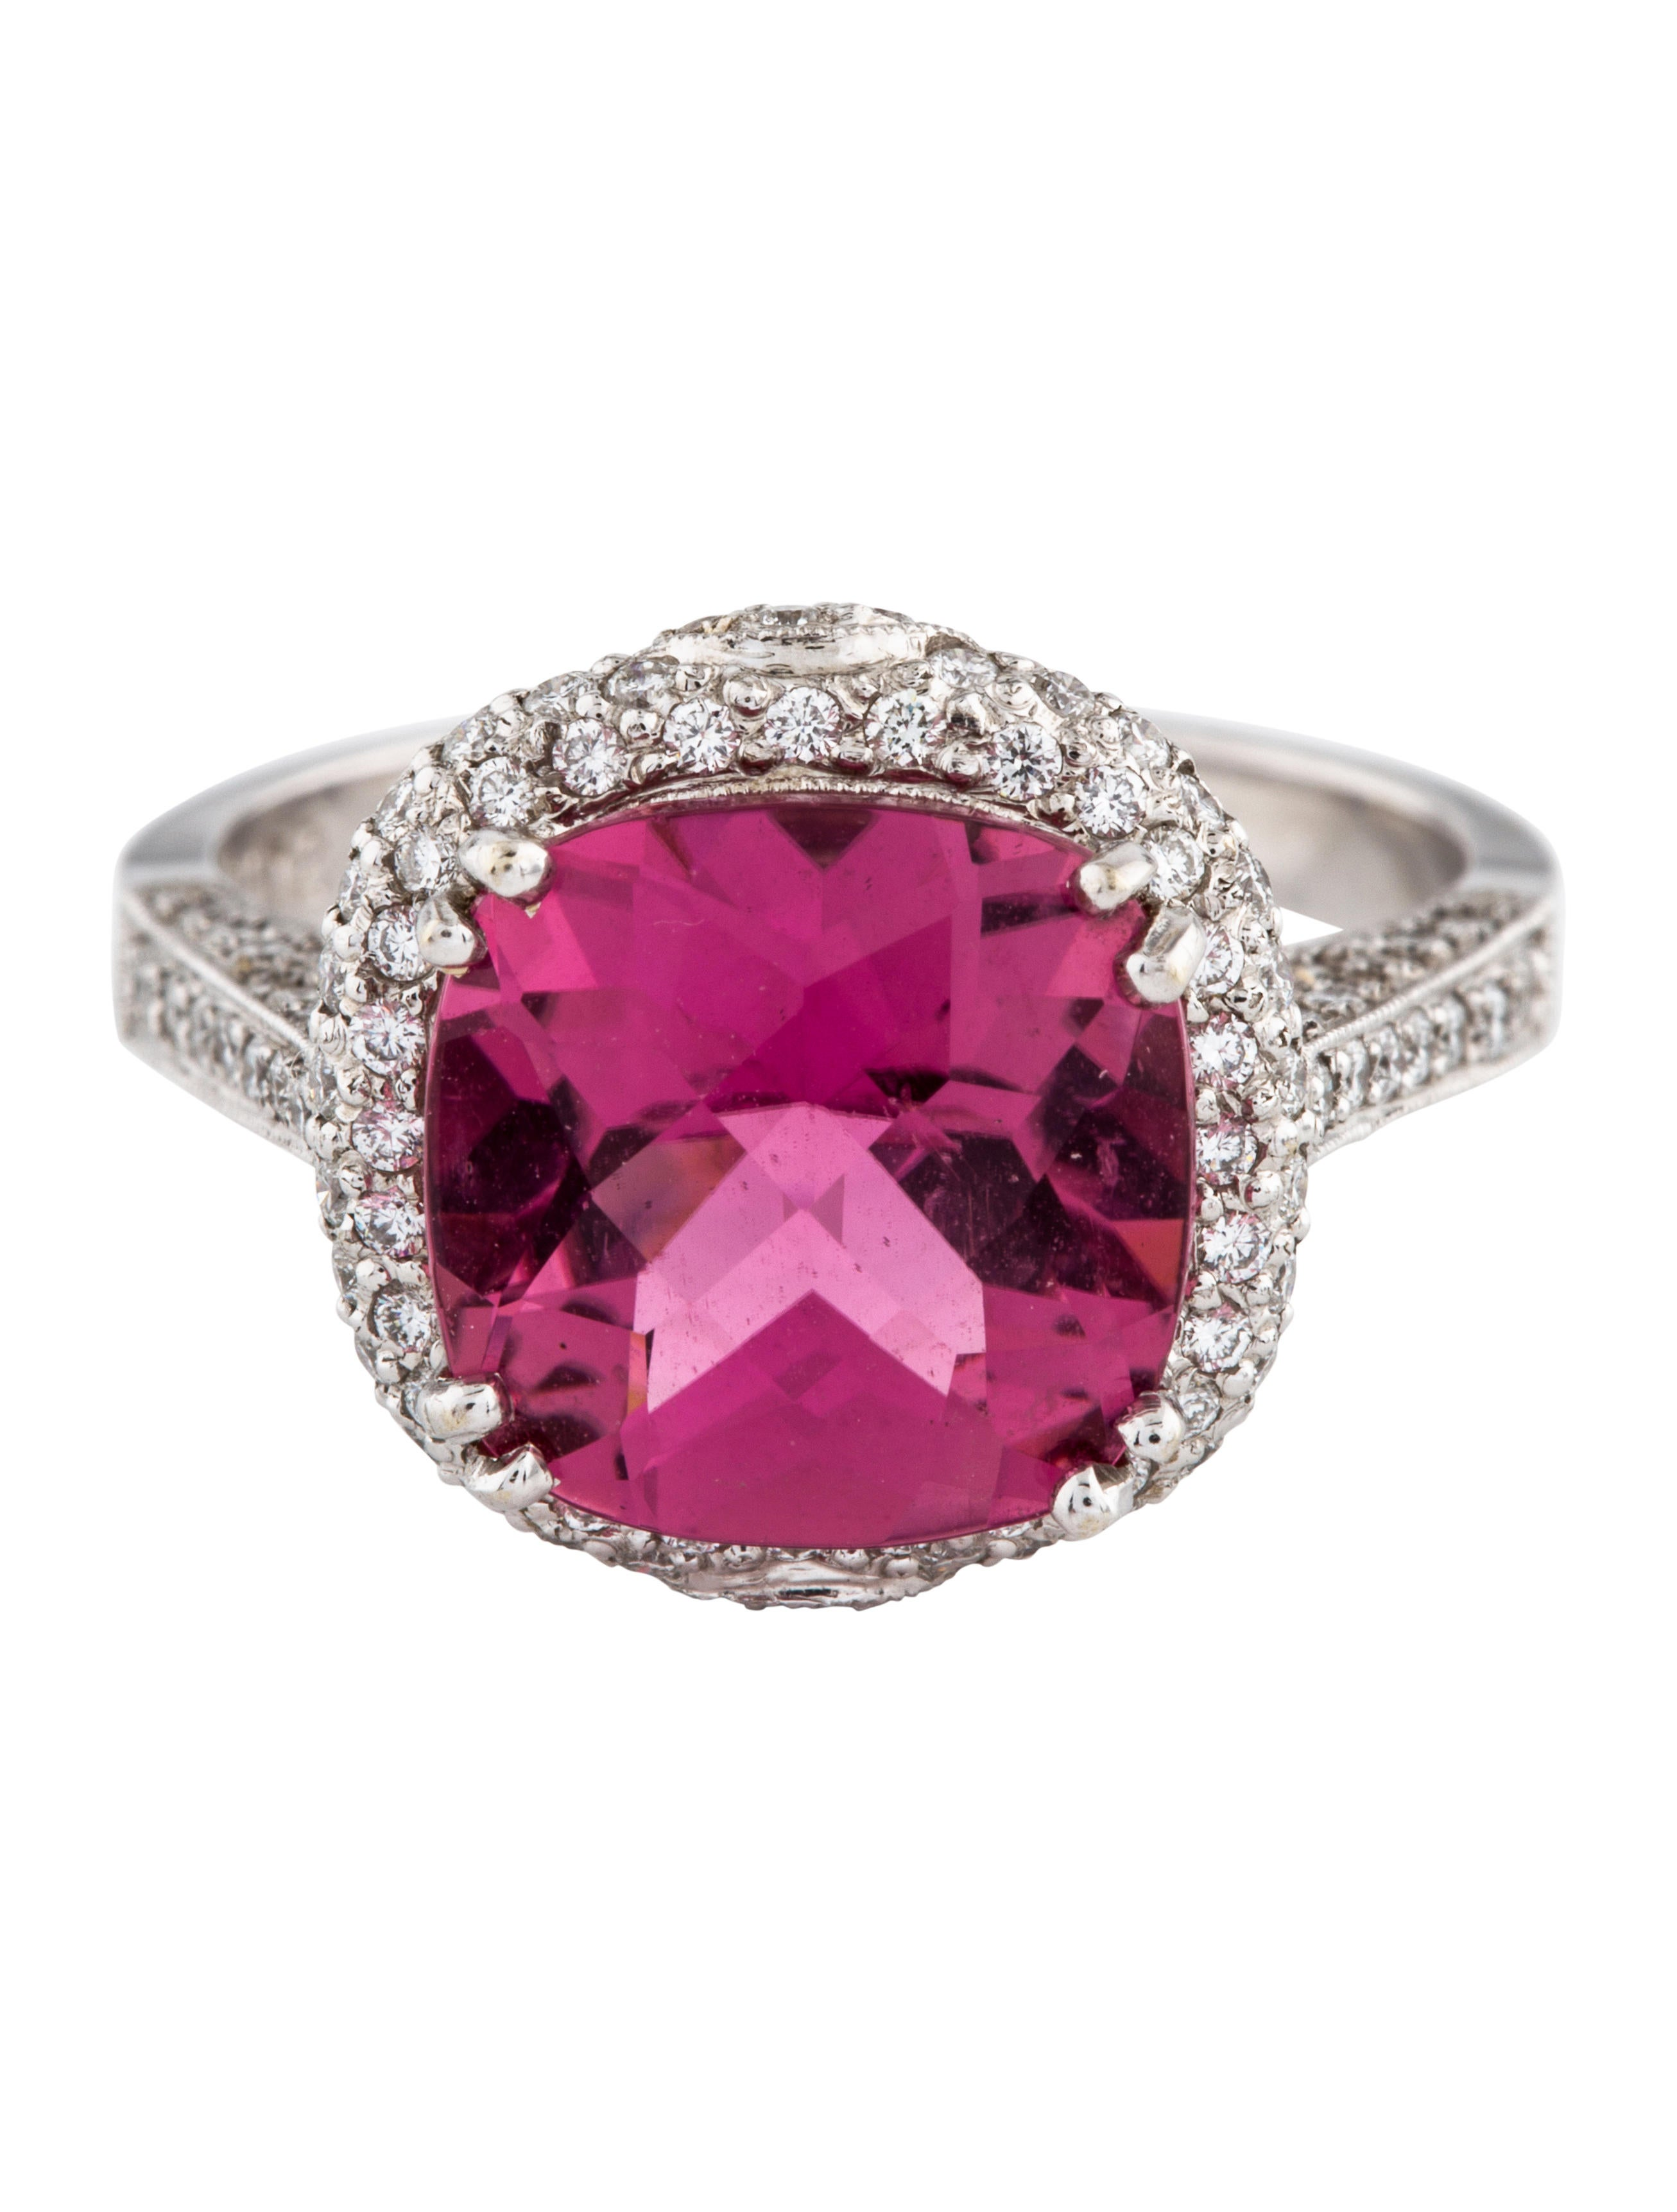 18K Pink Tourmaline & Diamond Ring - Rings - RRING52866 | The RealReal